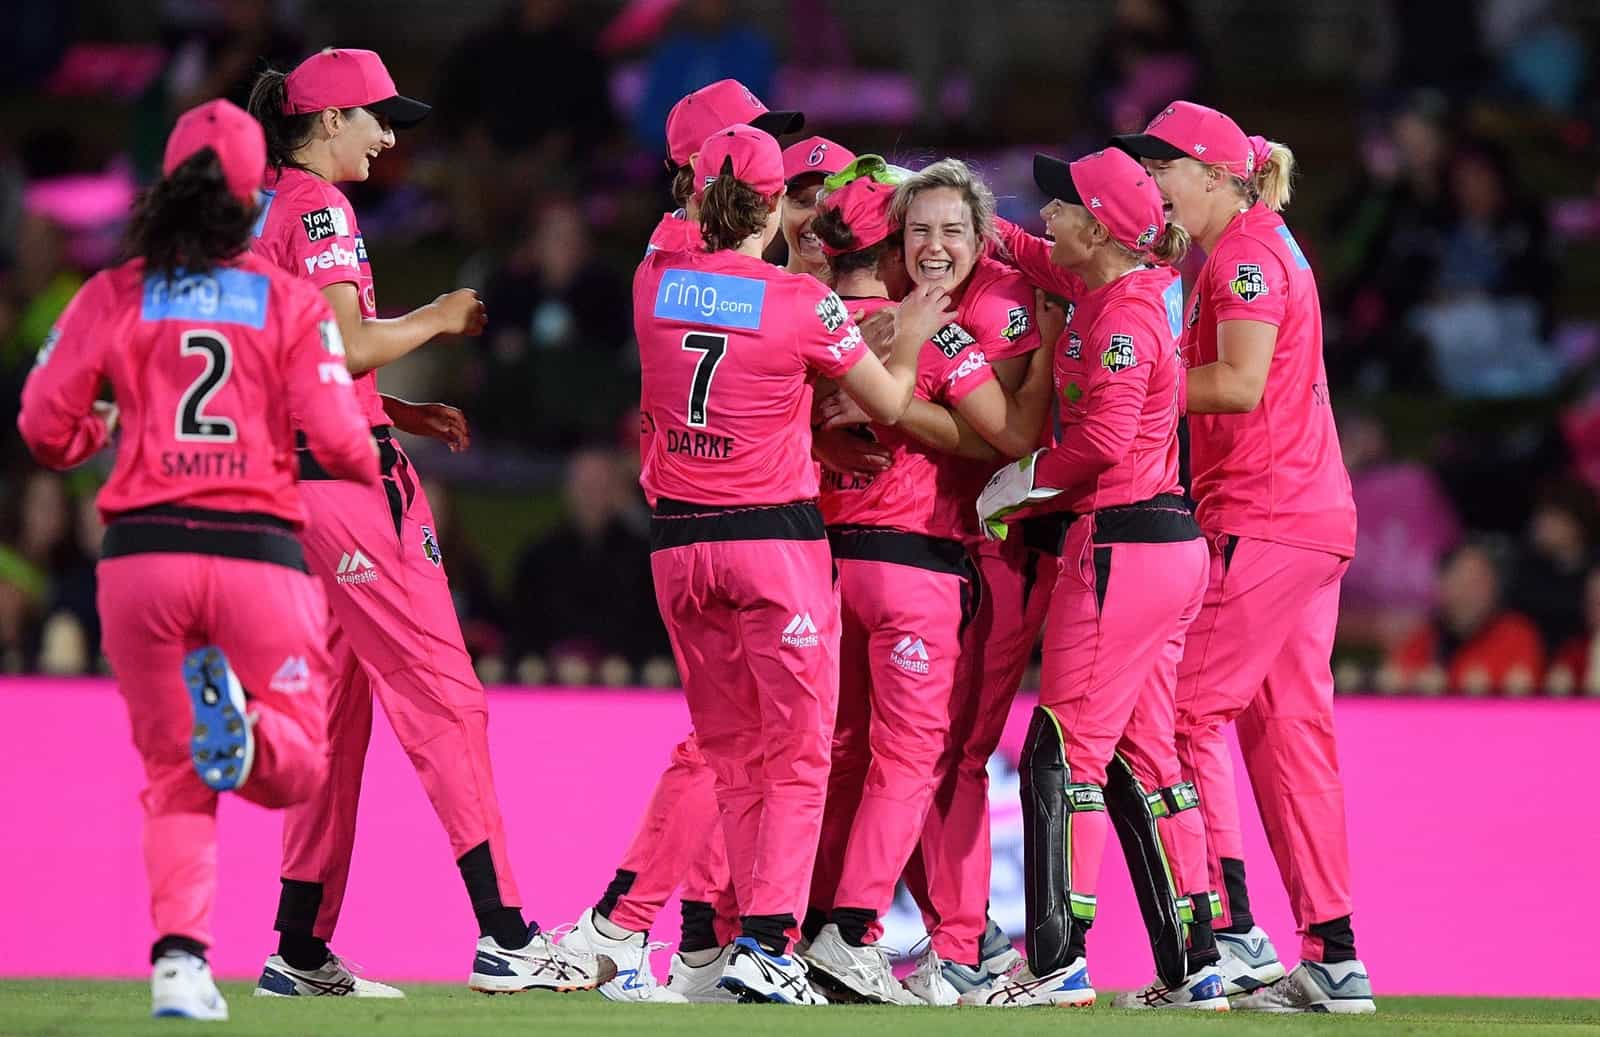 Shafali Verma To Play For Sydney Sixers In Women's BBL 2021